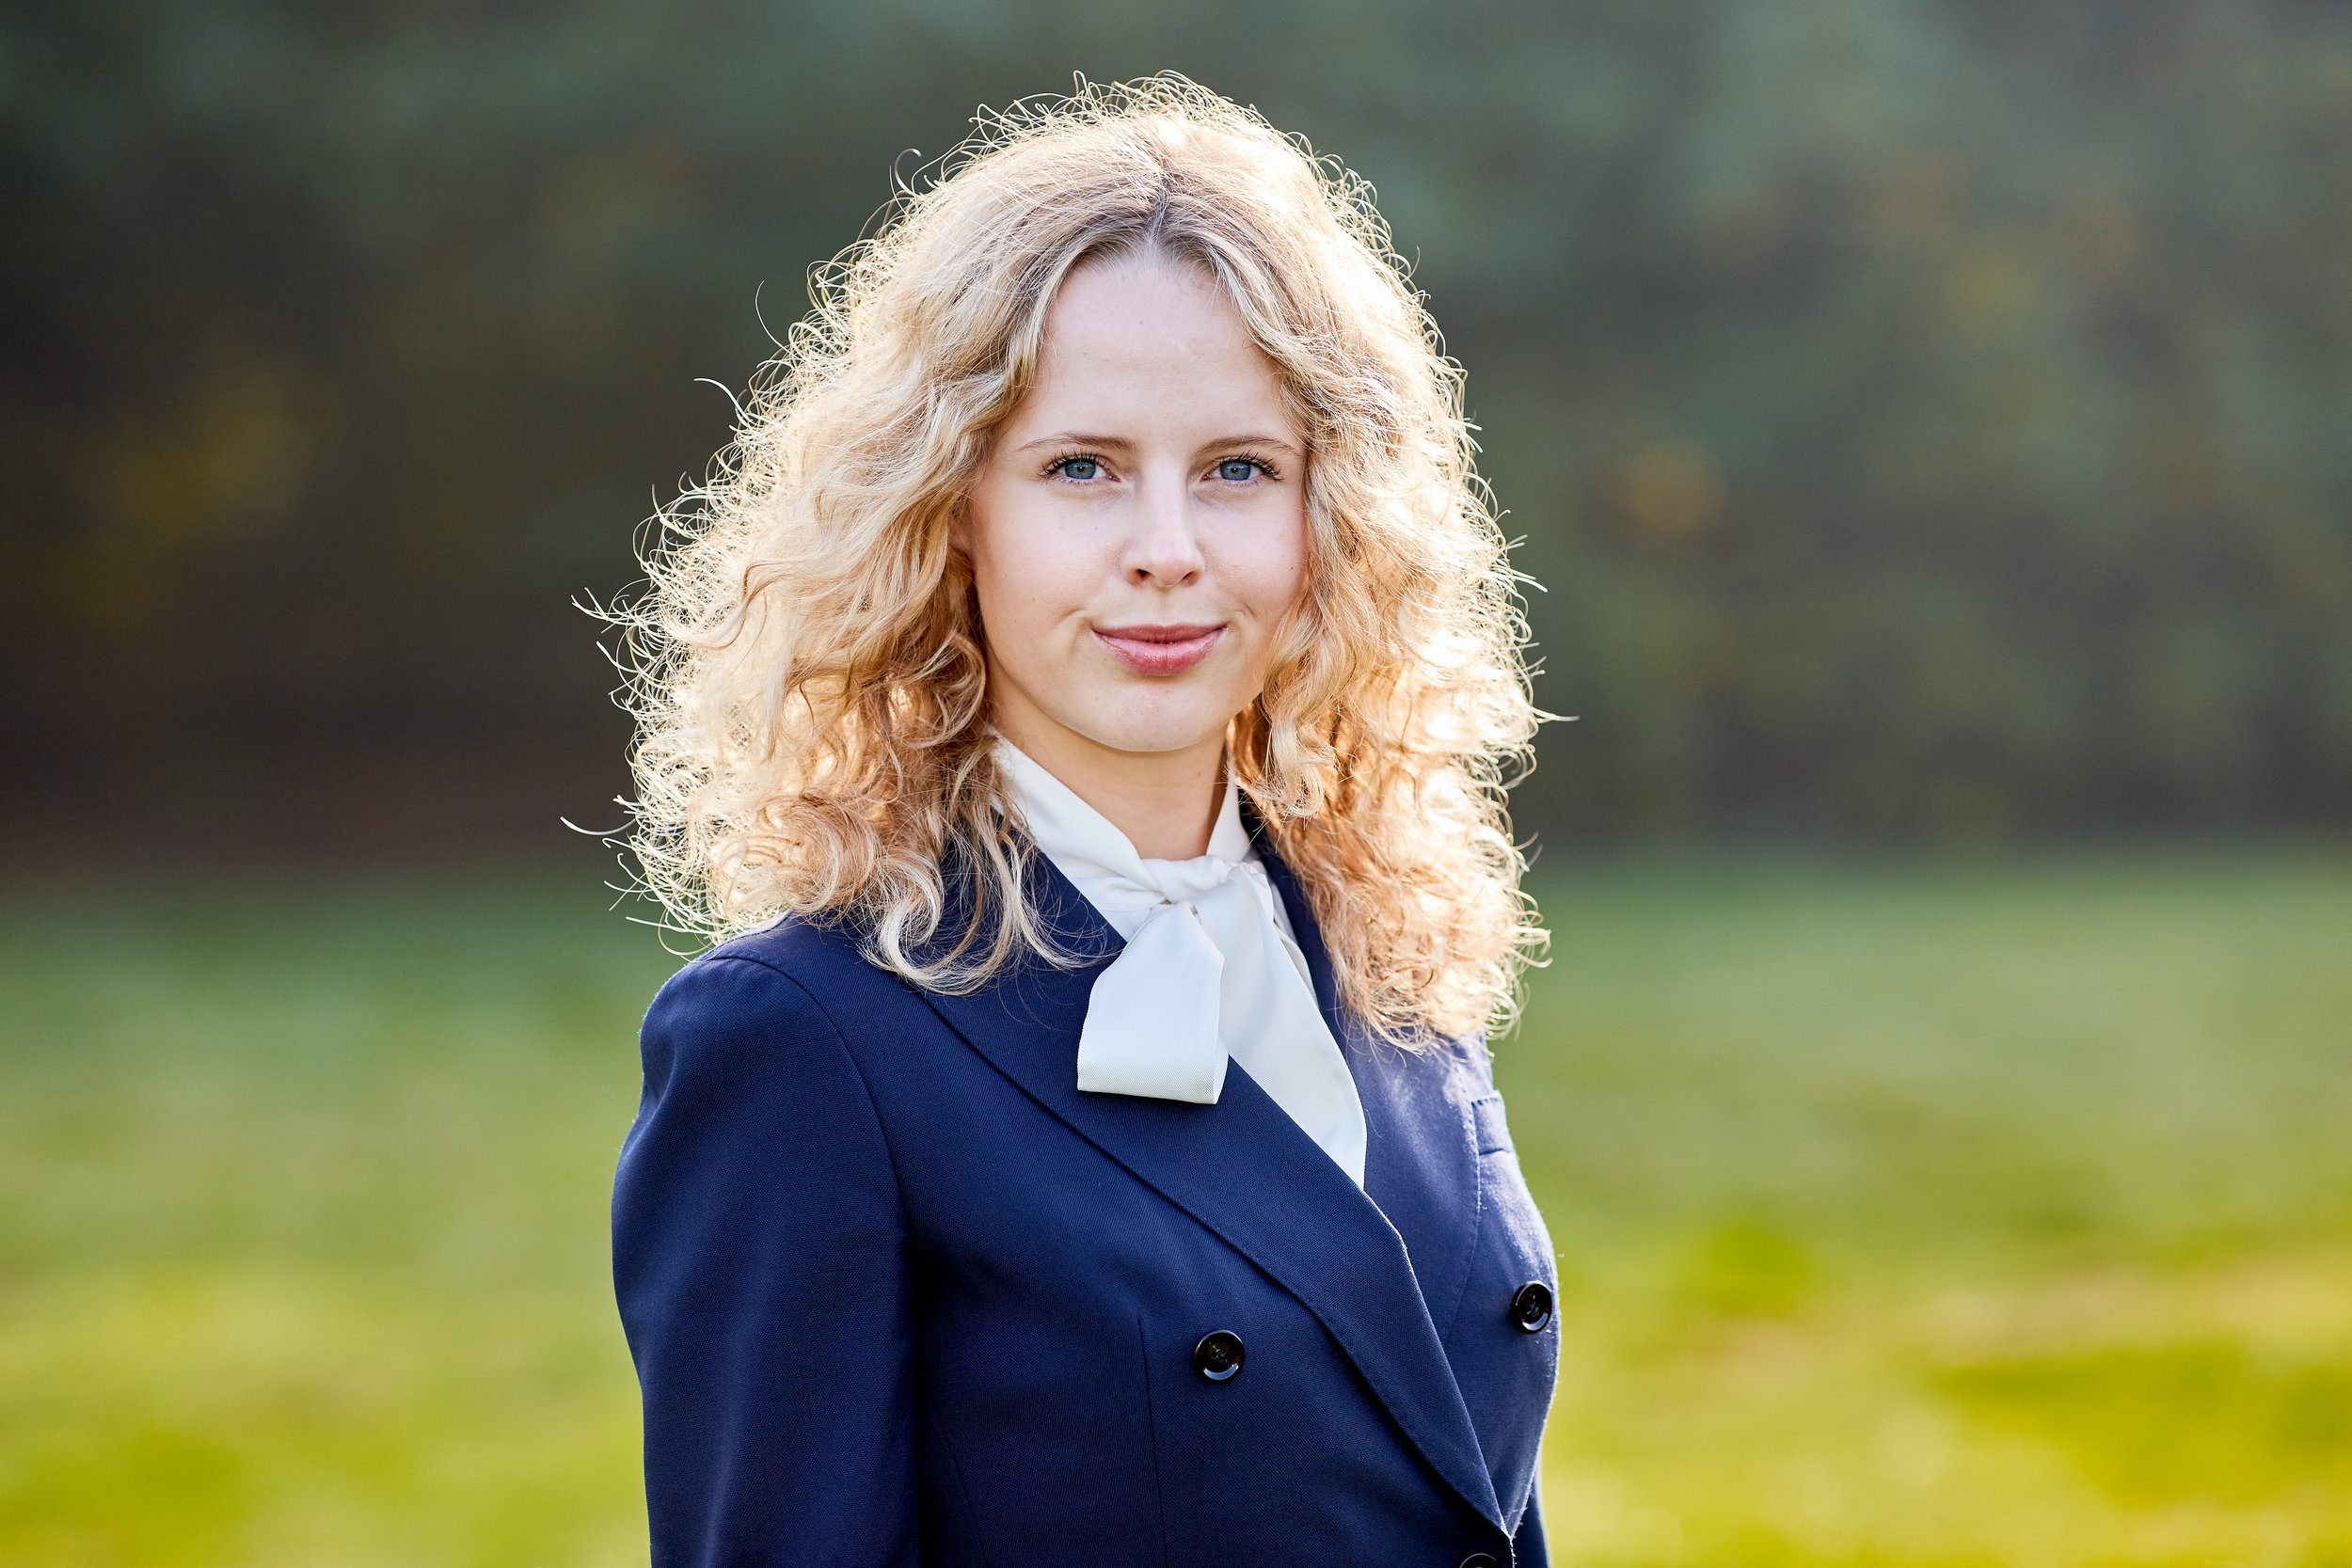 Rimma Velikanova (MSc) HEOR Consultant Expertise: Market access, budget impact modelling, reimbursement, lung cancer screening and HPV